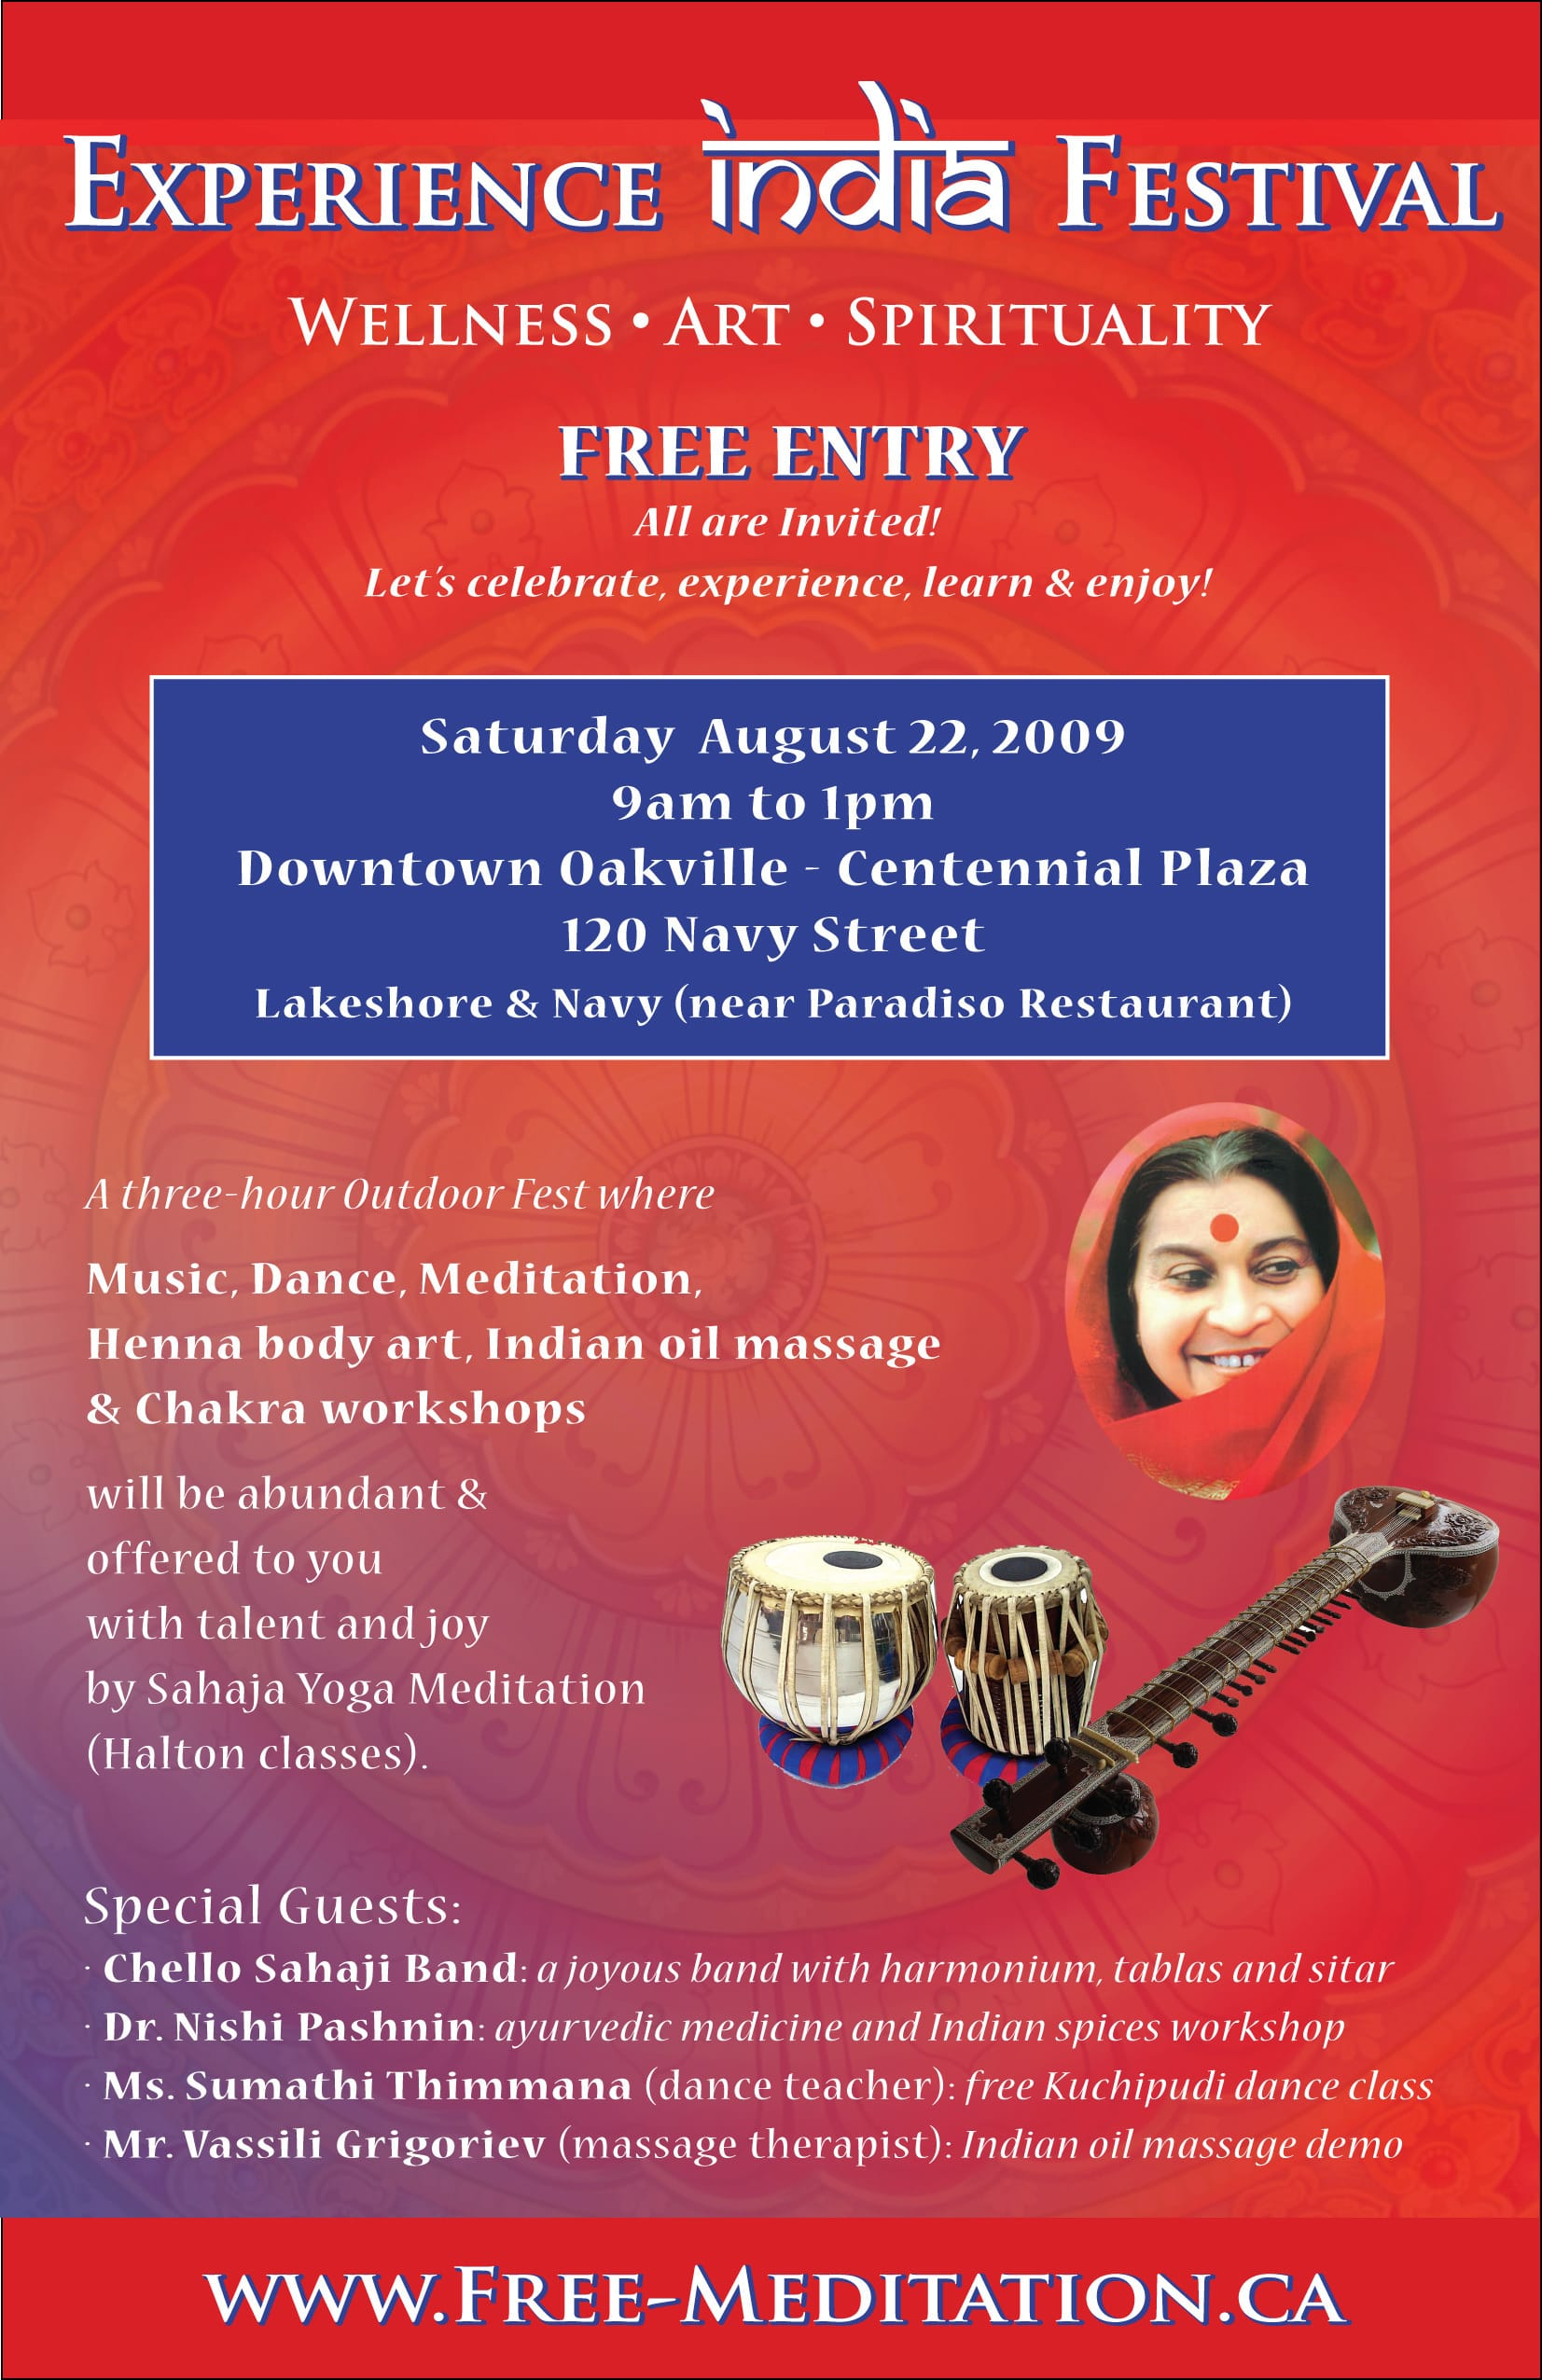 Experience India in Downtown Oakville!